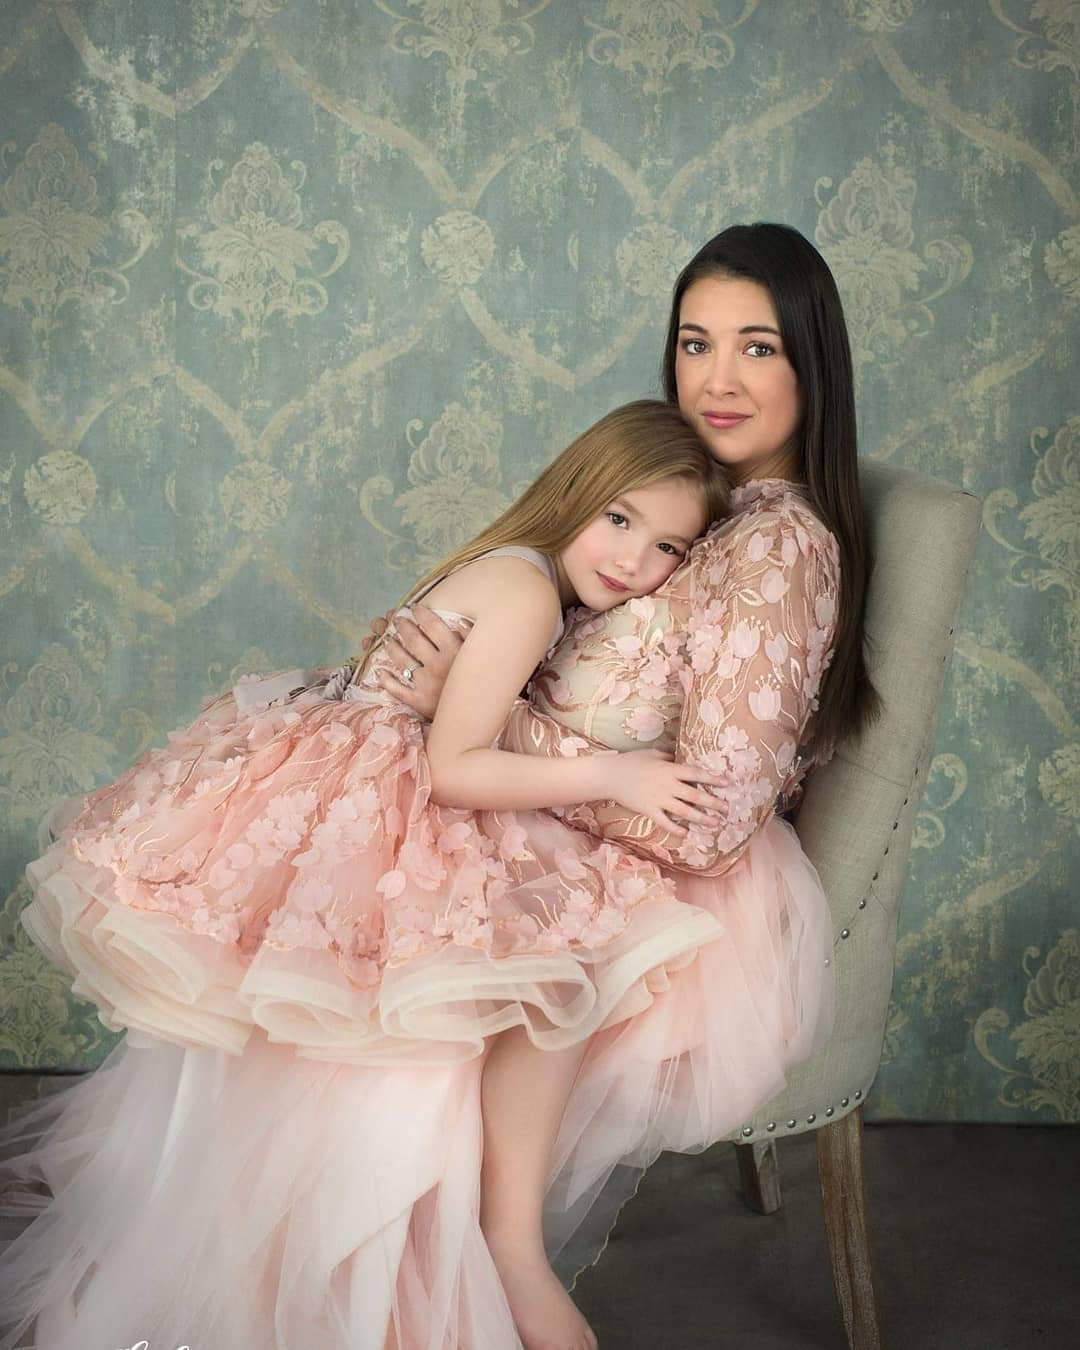 Vivien mommy and me set in blush pink